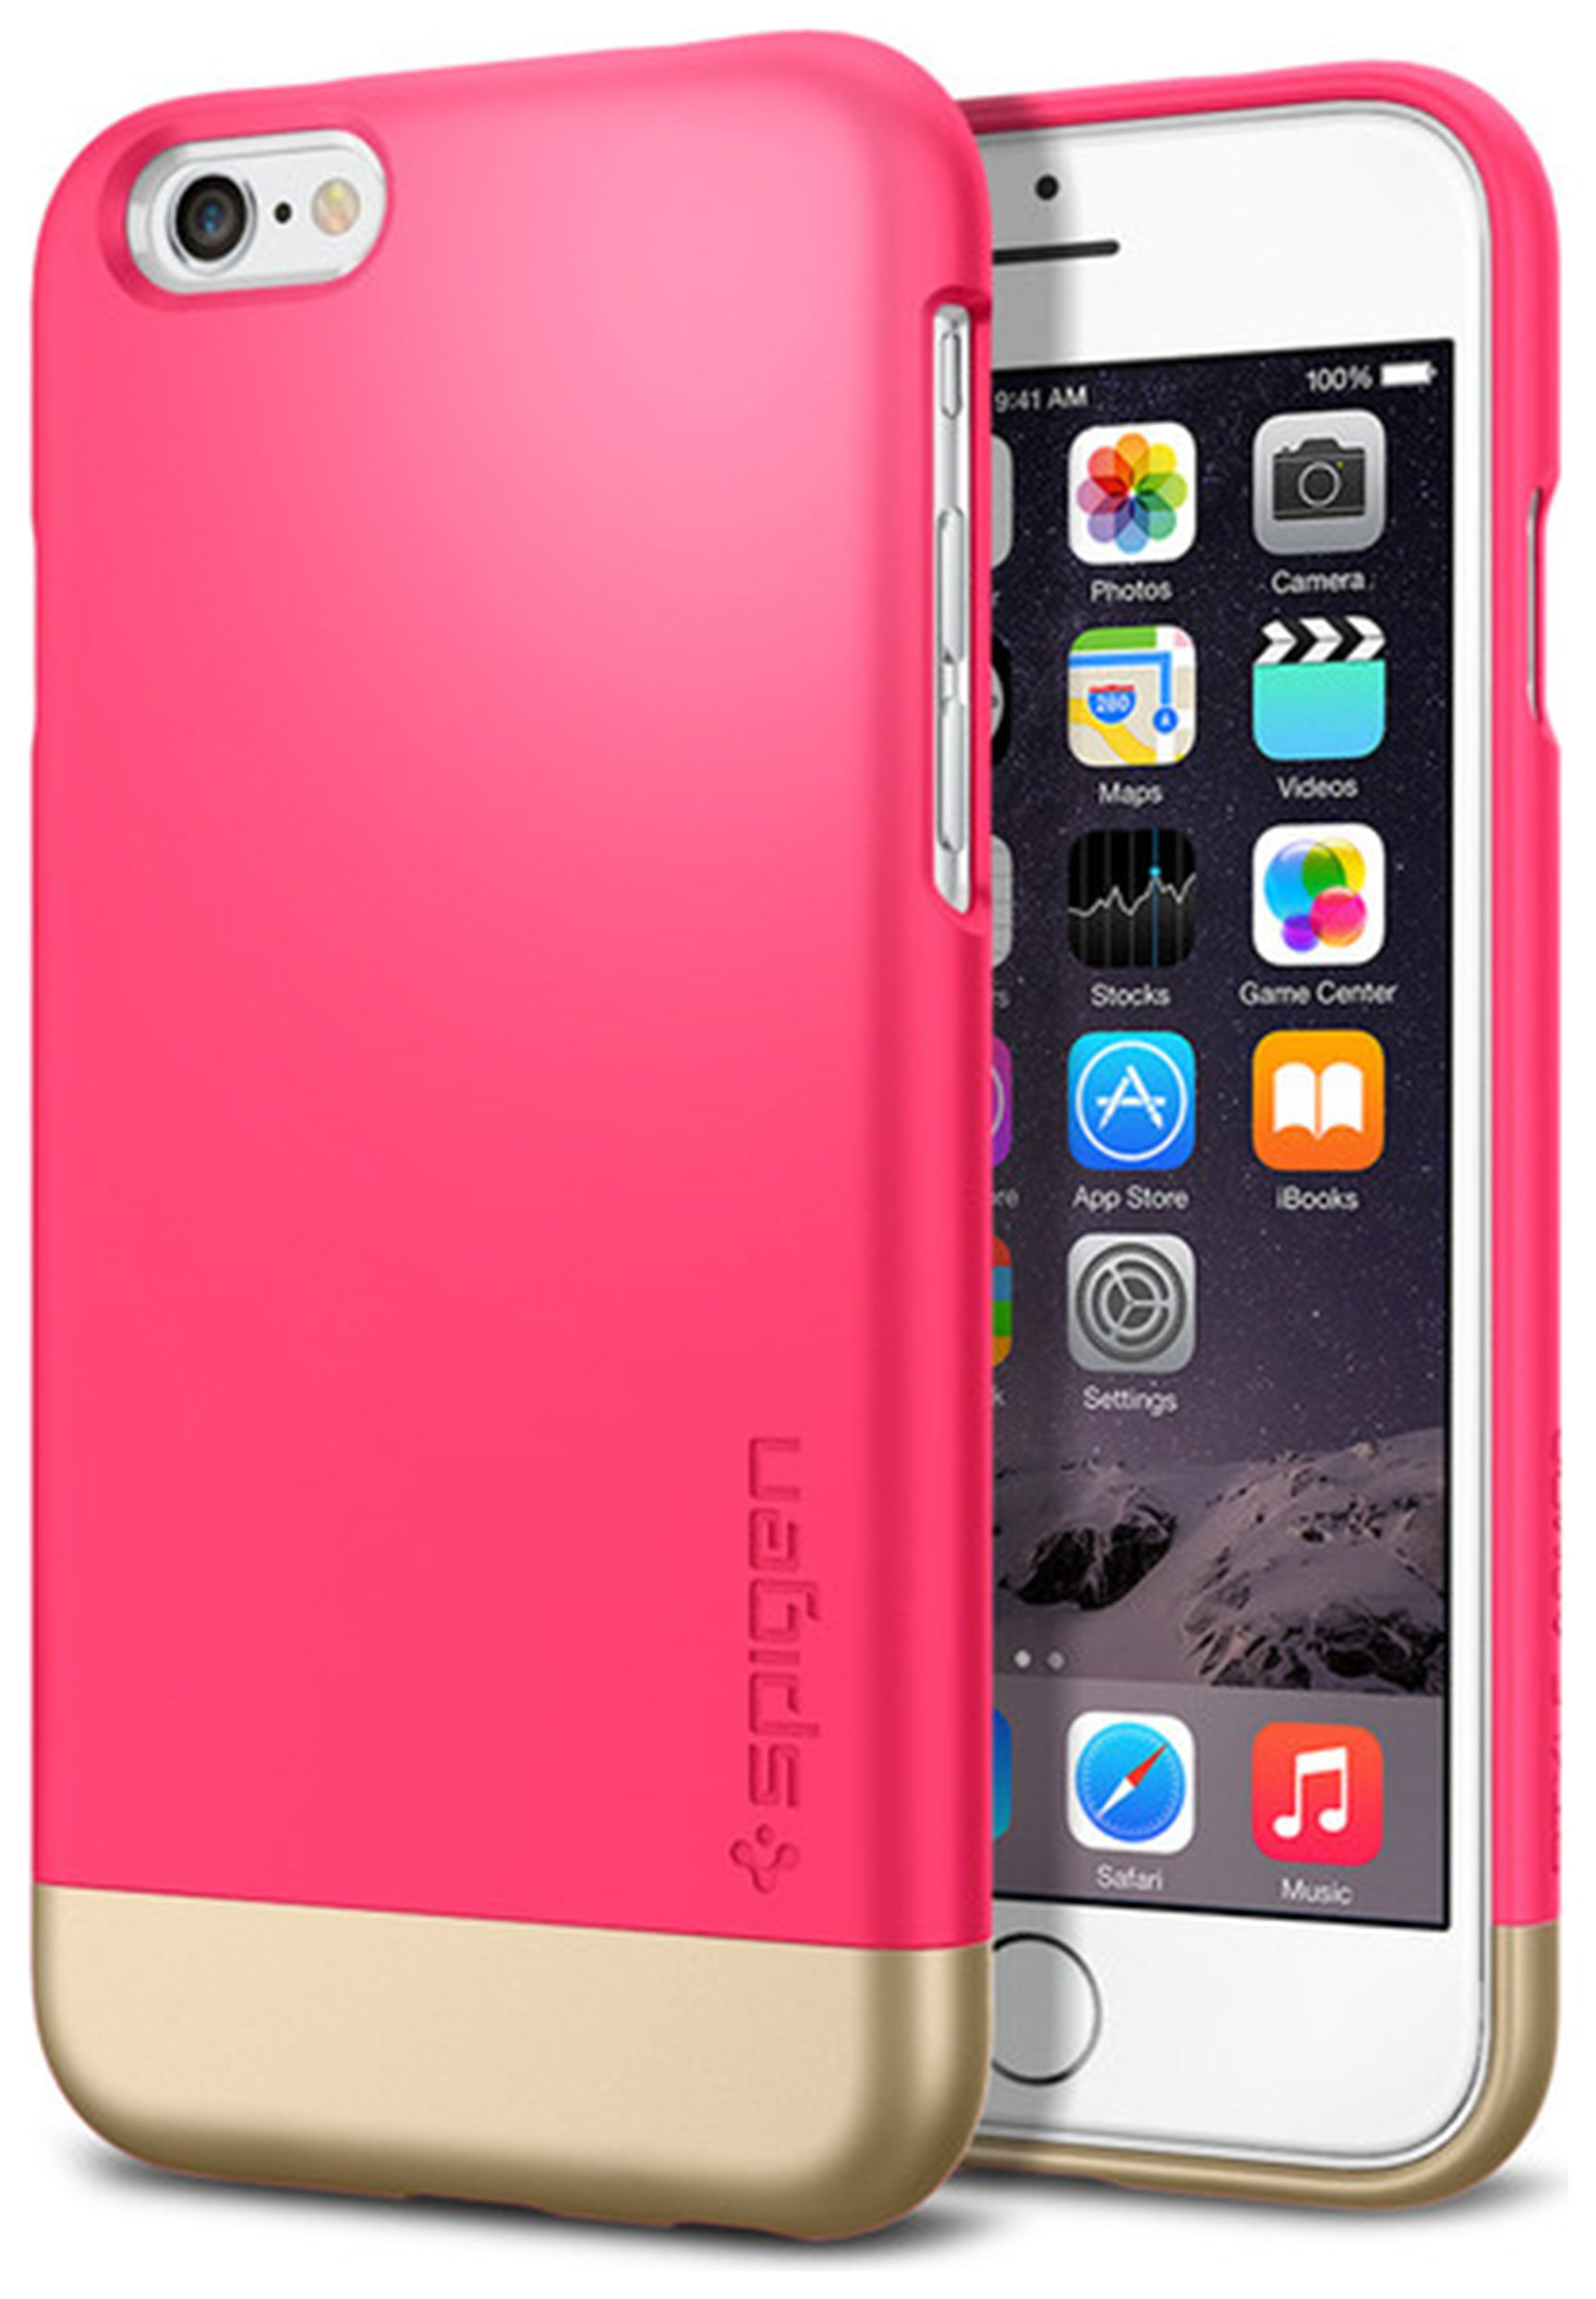 Apple Spigen Style Armor For iPhone 6 - Pink.